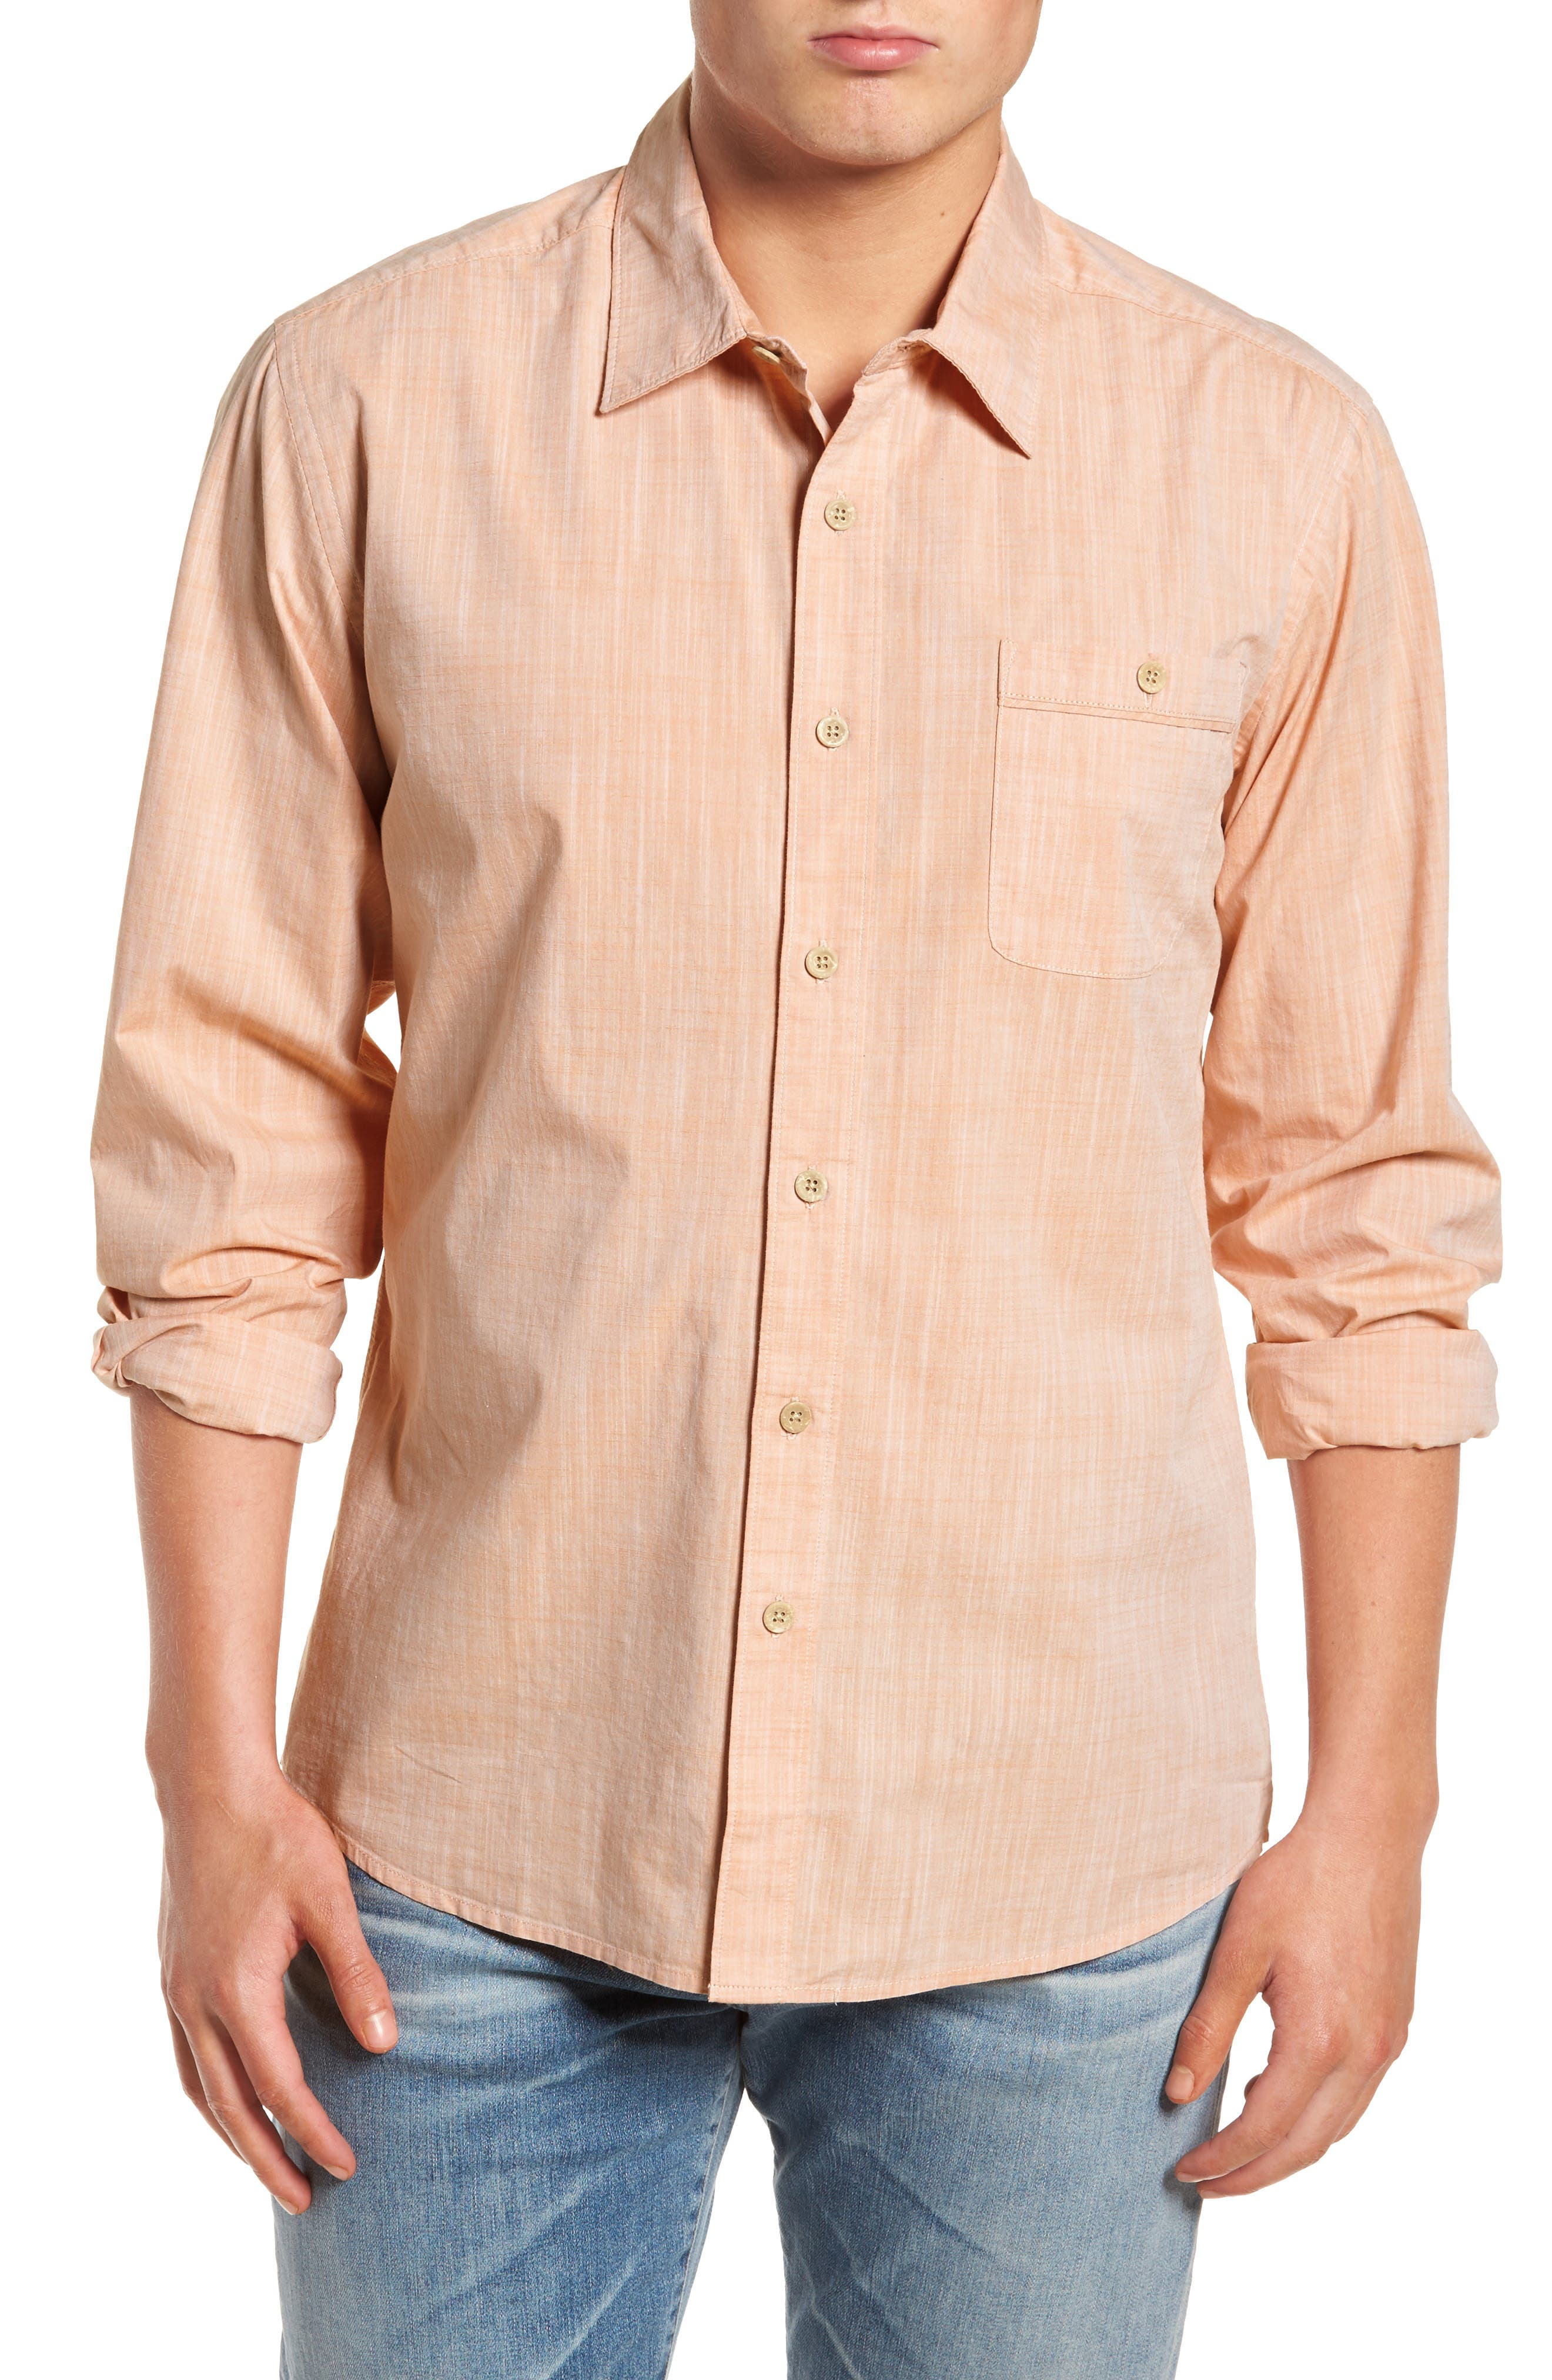 Mai Tai Regular Fit Sport Shirt,                         Main,                         color, Papaya